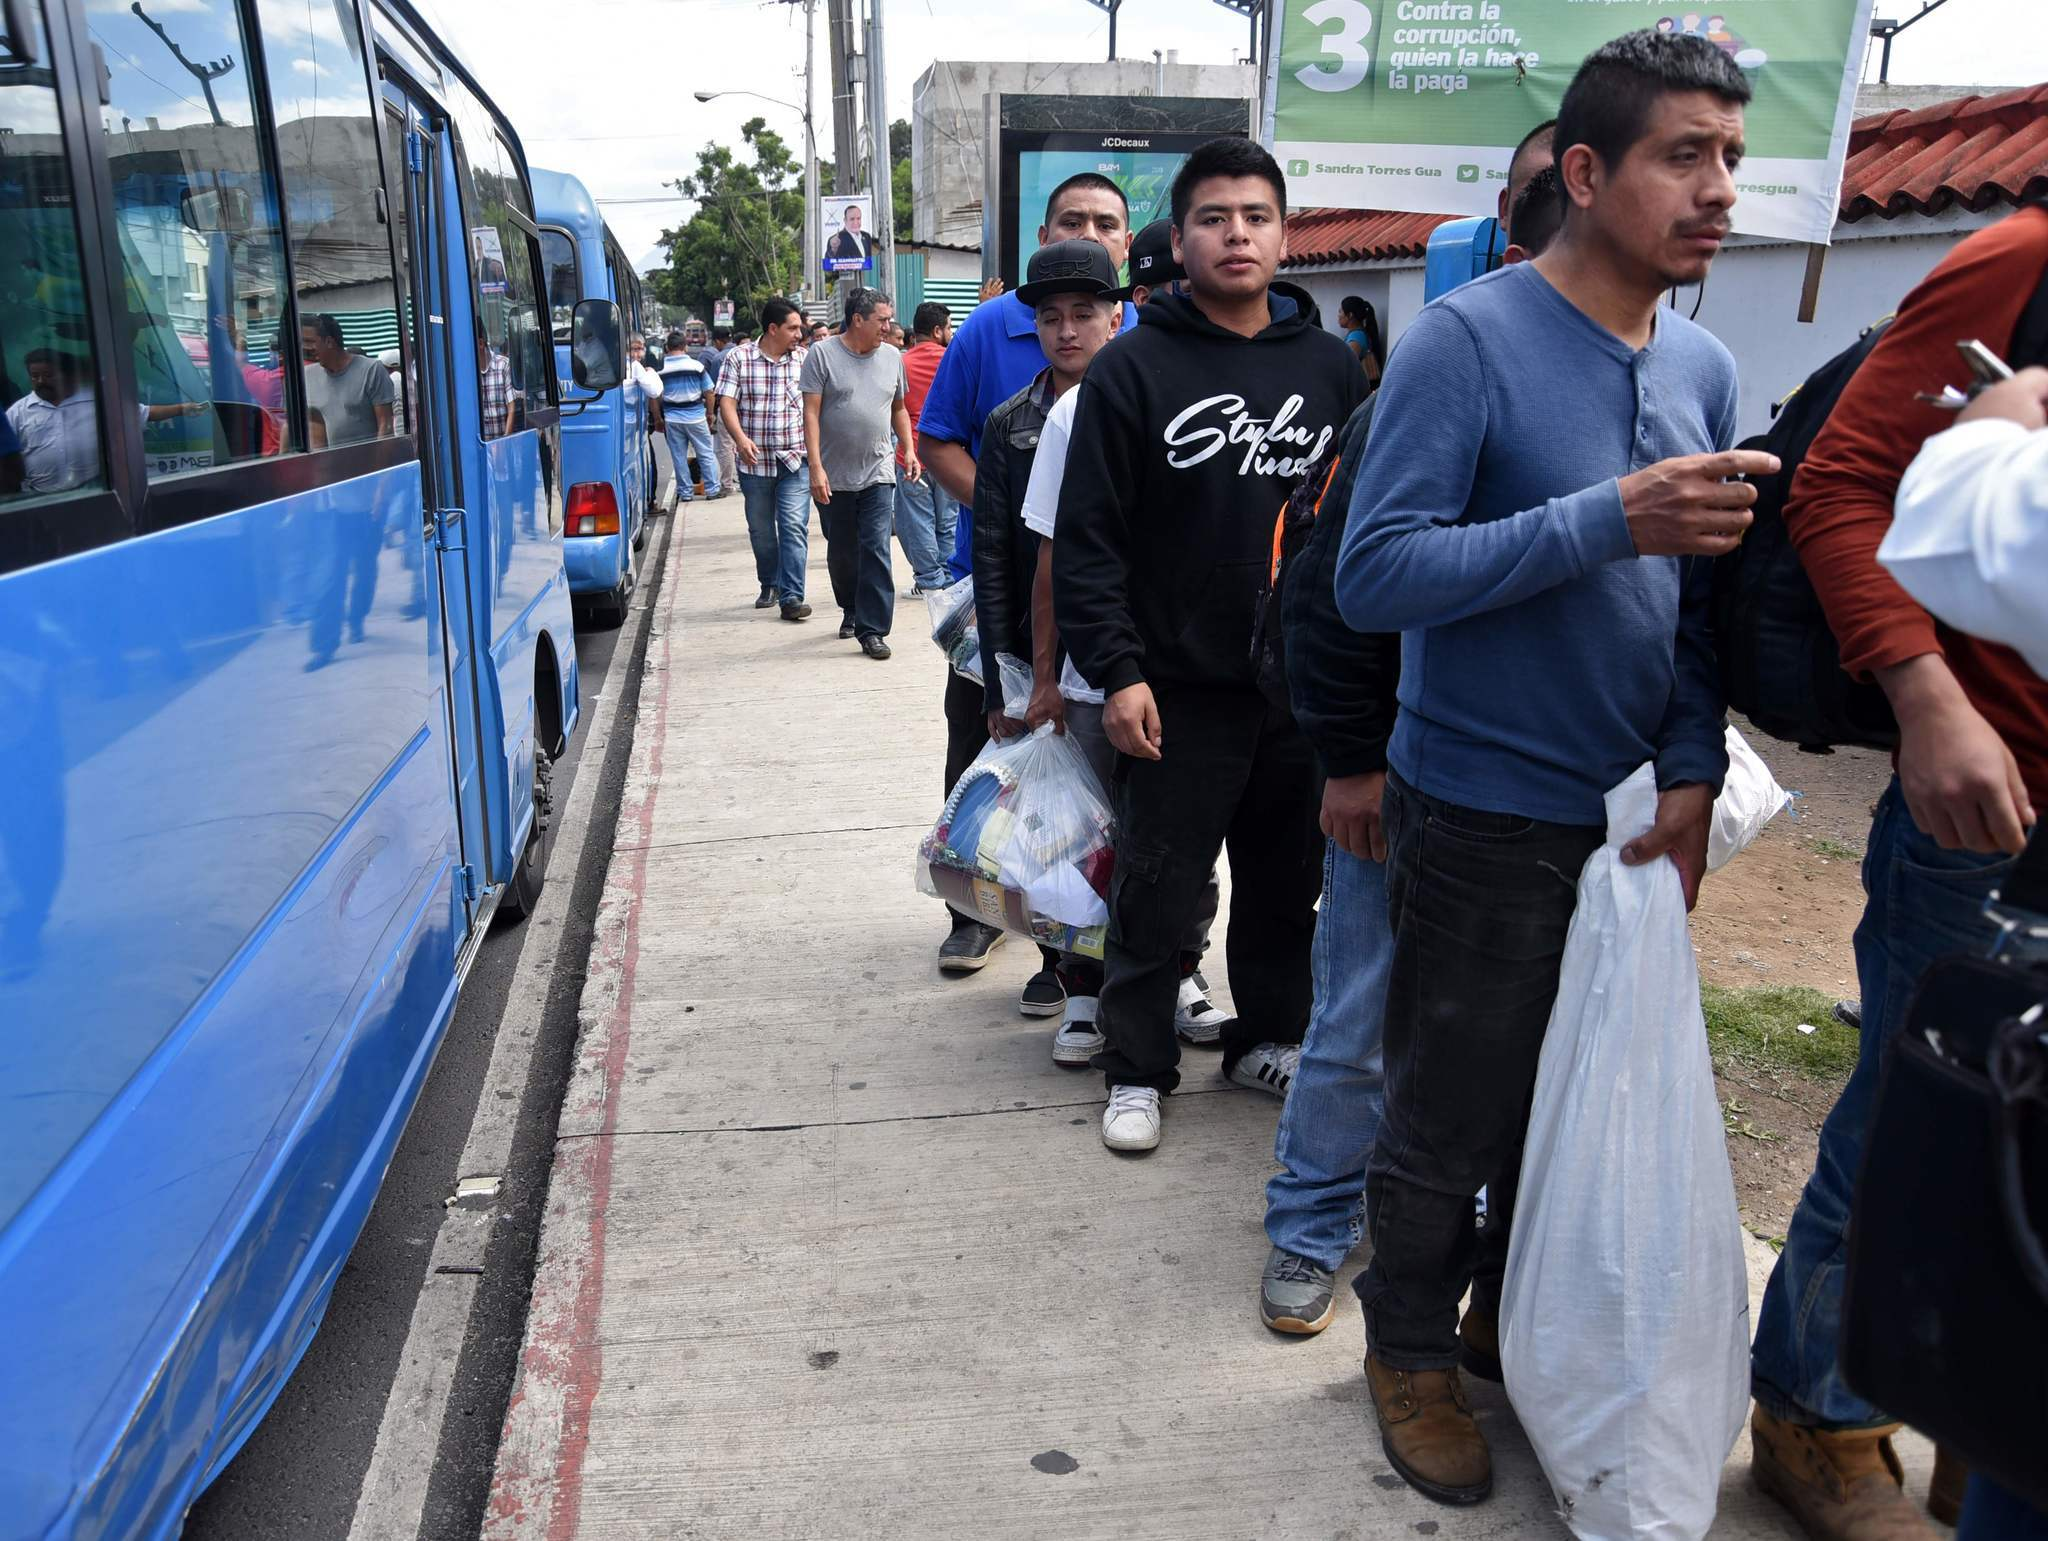 Offer more visas to people coming across the southern border